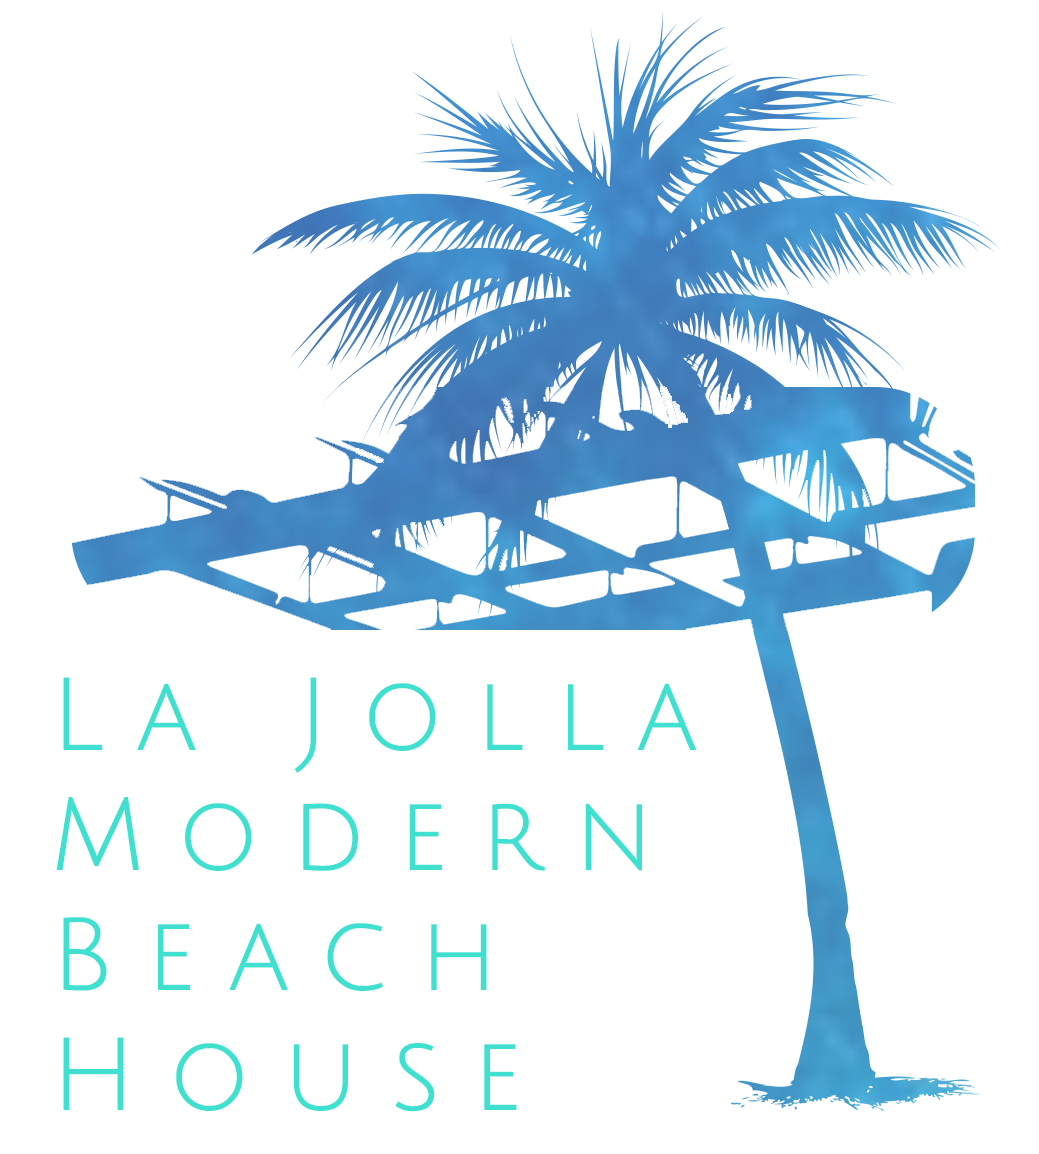 La Jolla Modern Beach House